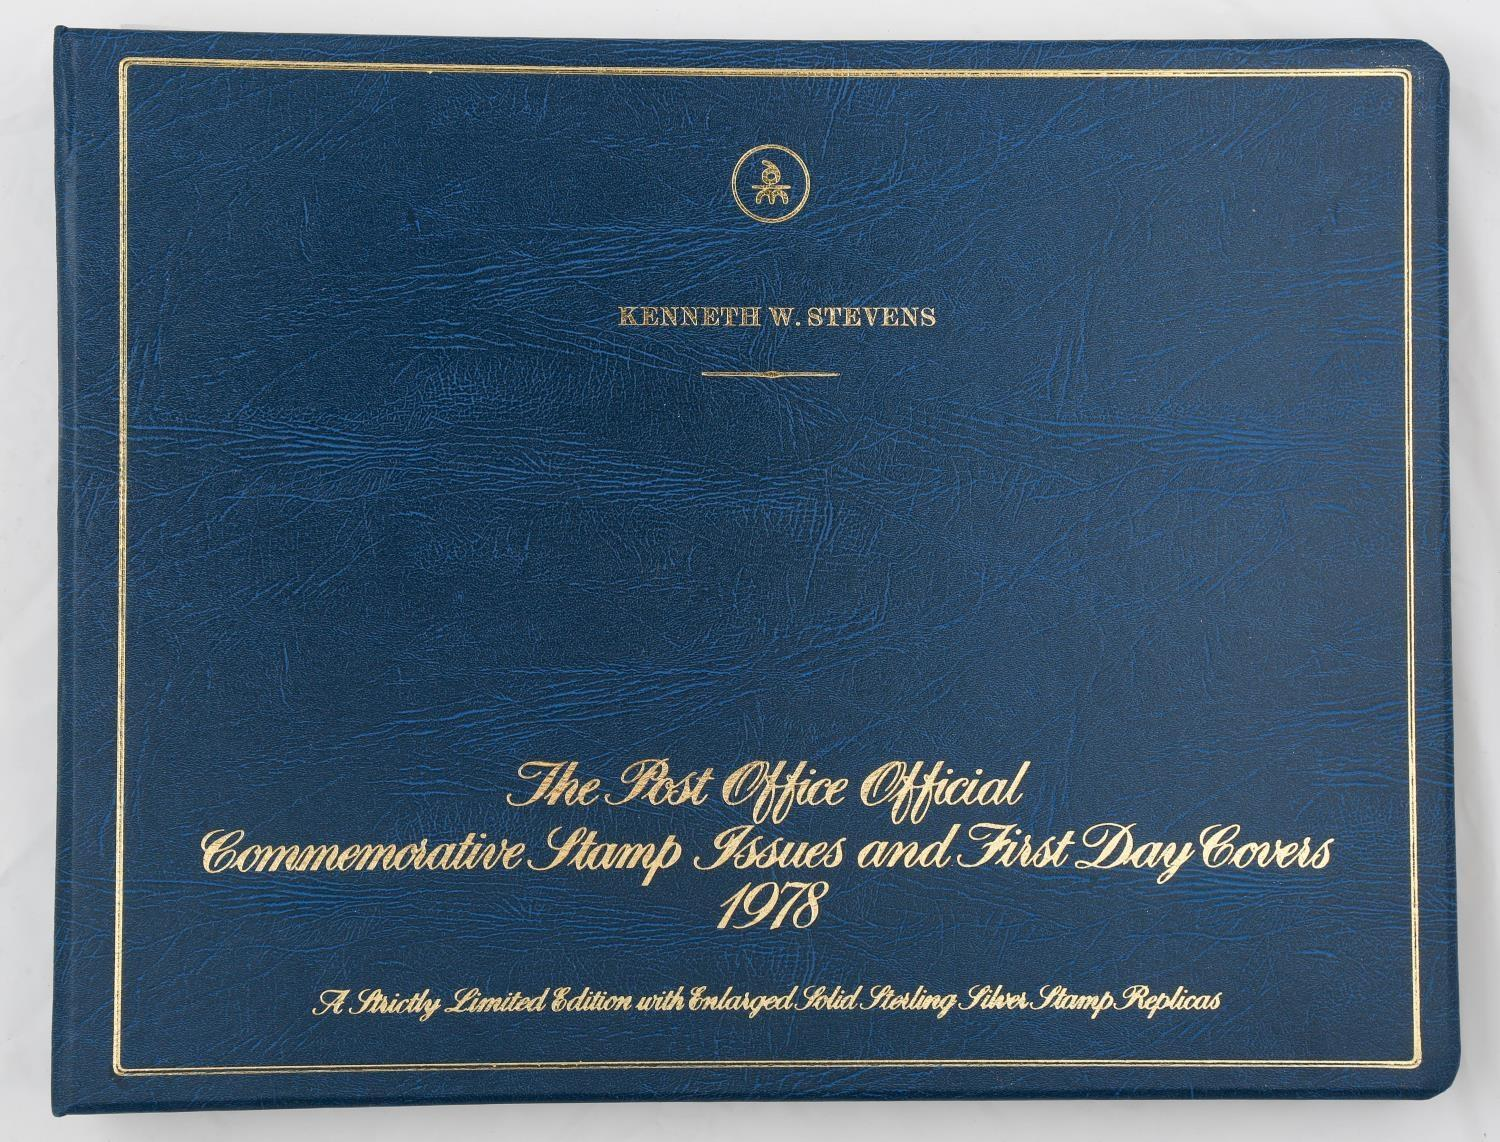 POST OFFICE OFFICIAL COMMEMORATIVE STAMP ISSUES AND FIRST DAY COVERS, 1978. AN ALBUM OF FIVE FIRST